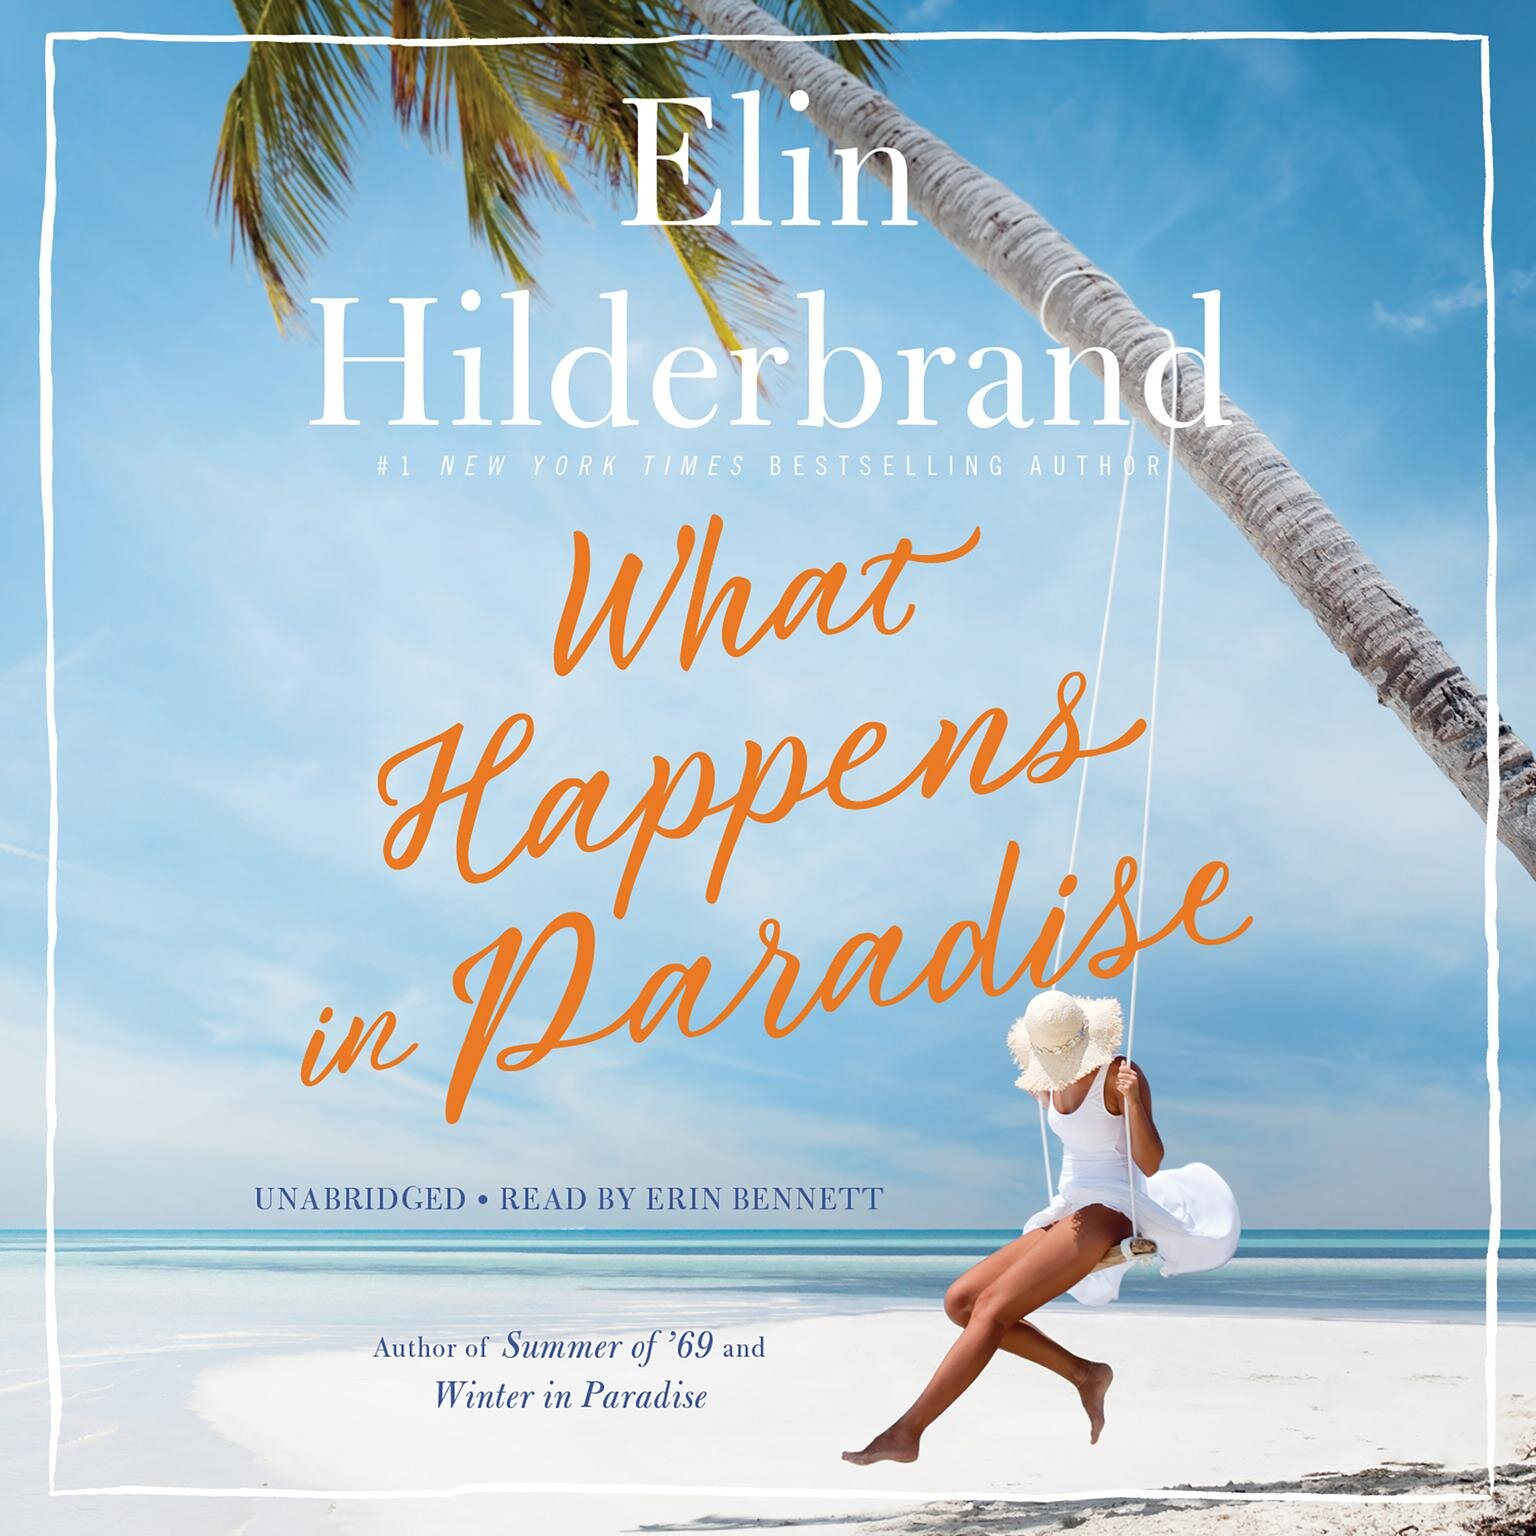 What Happens In Paradise by Elin Hildebrand - Rating: 3.5/5What Happens in Paradise is the second installment to the Winter in Paradise trilogy. I read the first book in February on a flight from Miami and honestly from the start I wasn't obsessed, but 5 hours later and no in-flight movies watched I finished the entire book, so of course when the second book was available on Book of the Month, I jumped at it. It's hard to review a sequel without giving away spoilers from the first, so I'm going to keep it vague here. First off, the second book wasn't filled with as much drama as Winter in Paradise, but rather focused on all the budding relationships from the previous books. The main plot of the series is to find out why and how Russ Steele was killed with his mistress on the island of St. John and I was hoping we would inch closer to getting some answers, but it seems like Elin Hildebrand is waiting to spill it all in the final book. Like the first book (and most of Hildebrand's books) it's the perfect beach read that's fast, fun, and little who-dun-it.Is it a must read? Yes, if you've read the first! They would both be perfect for an island get away this winter.